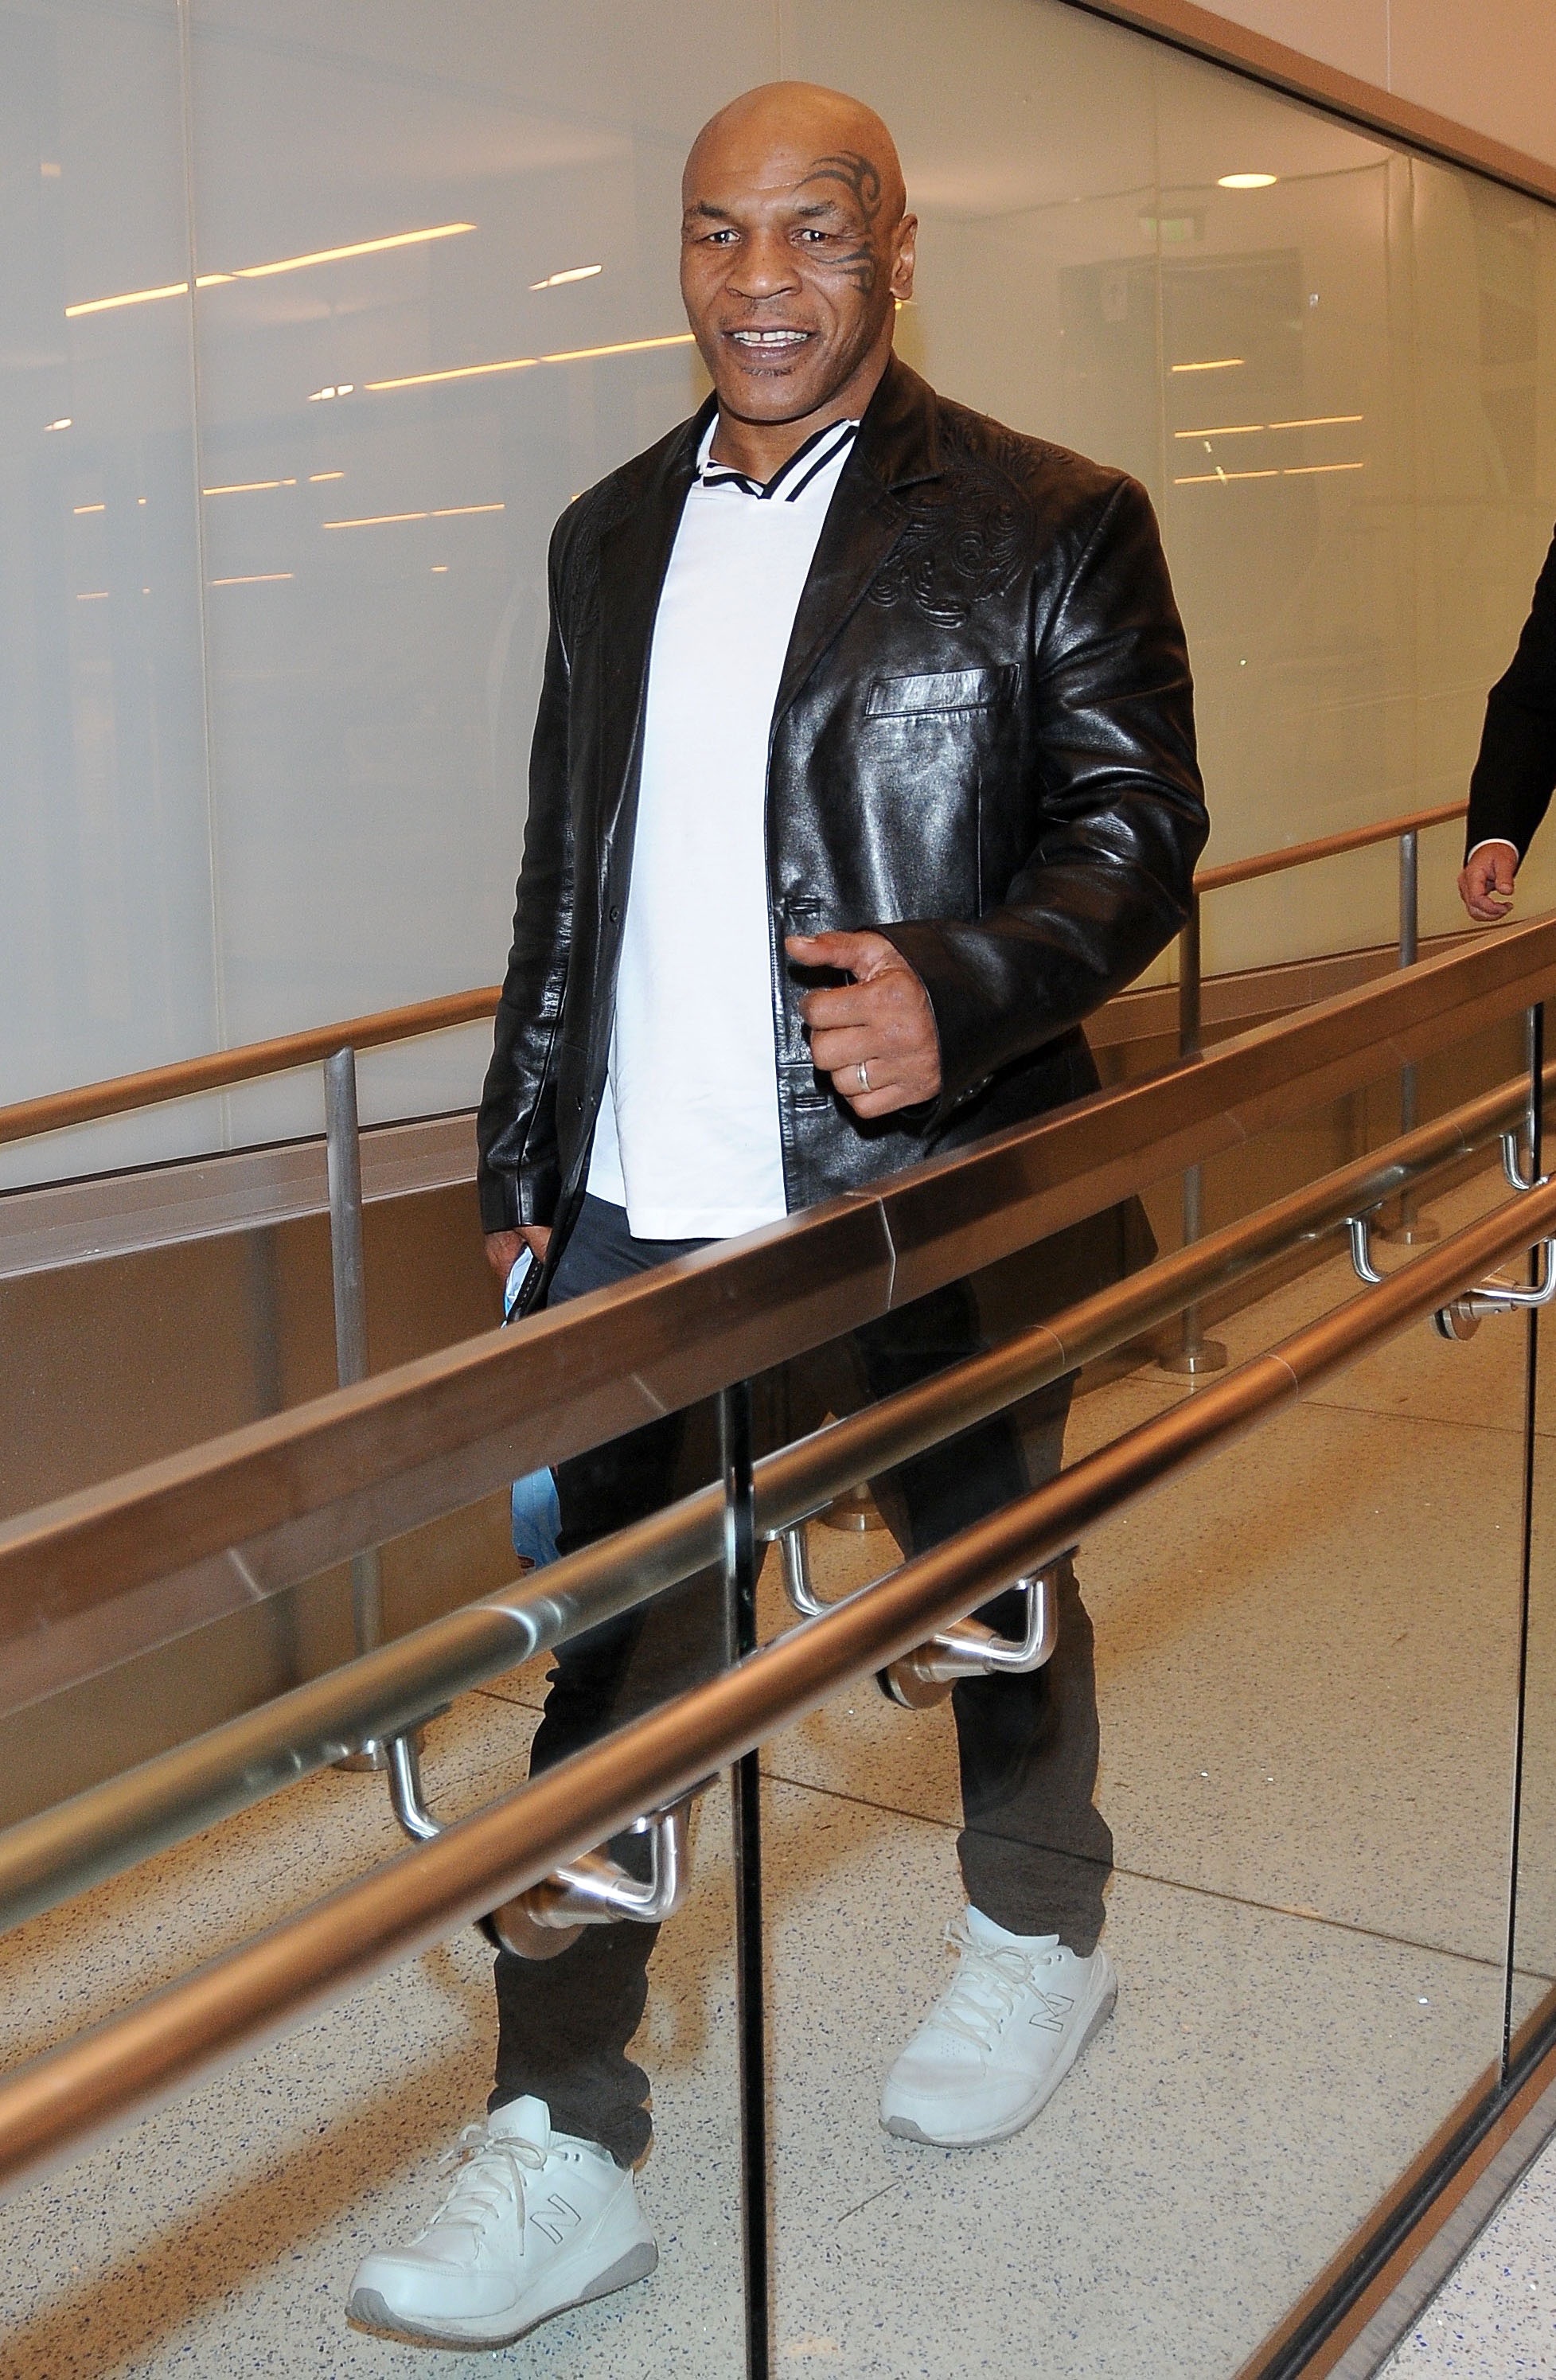 Former Boxing Superstar Mike Tyson Was Seen Departing From LAX In Los Angeles, California On February 22, 2016. Backgrid 4 hours